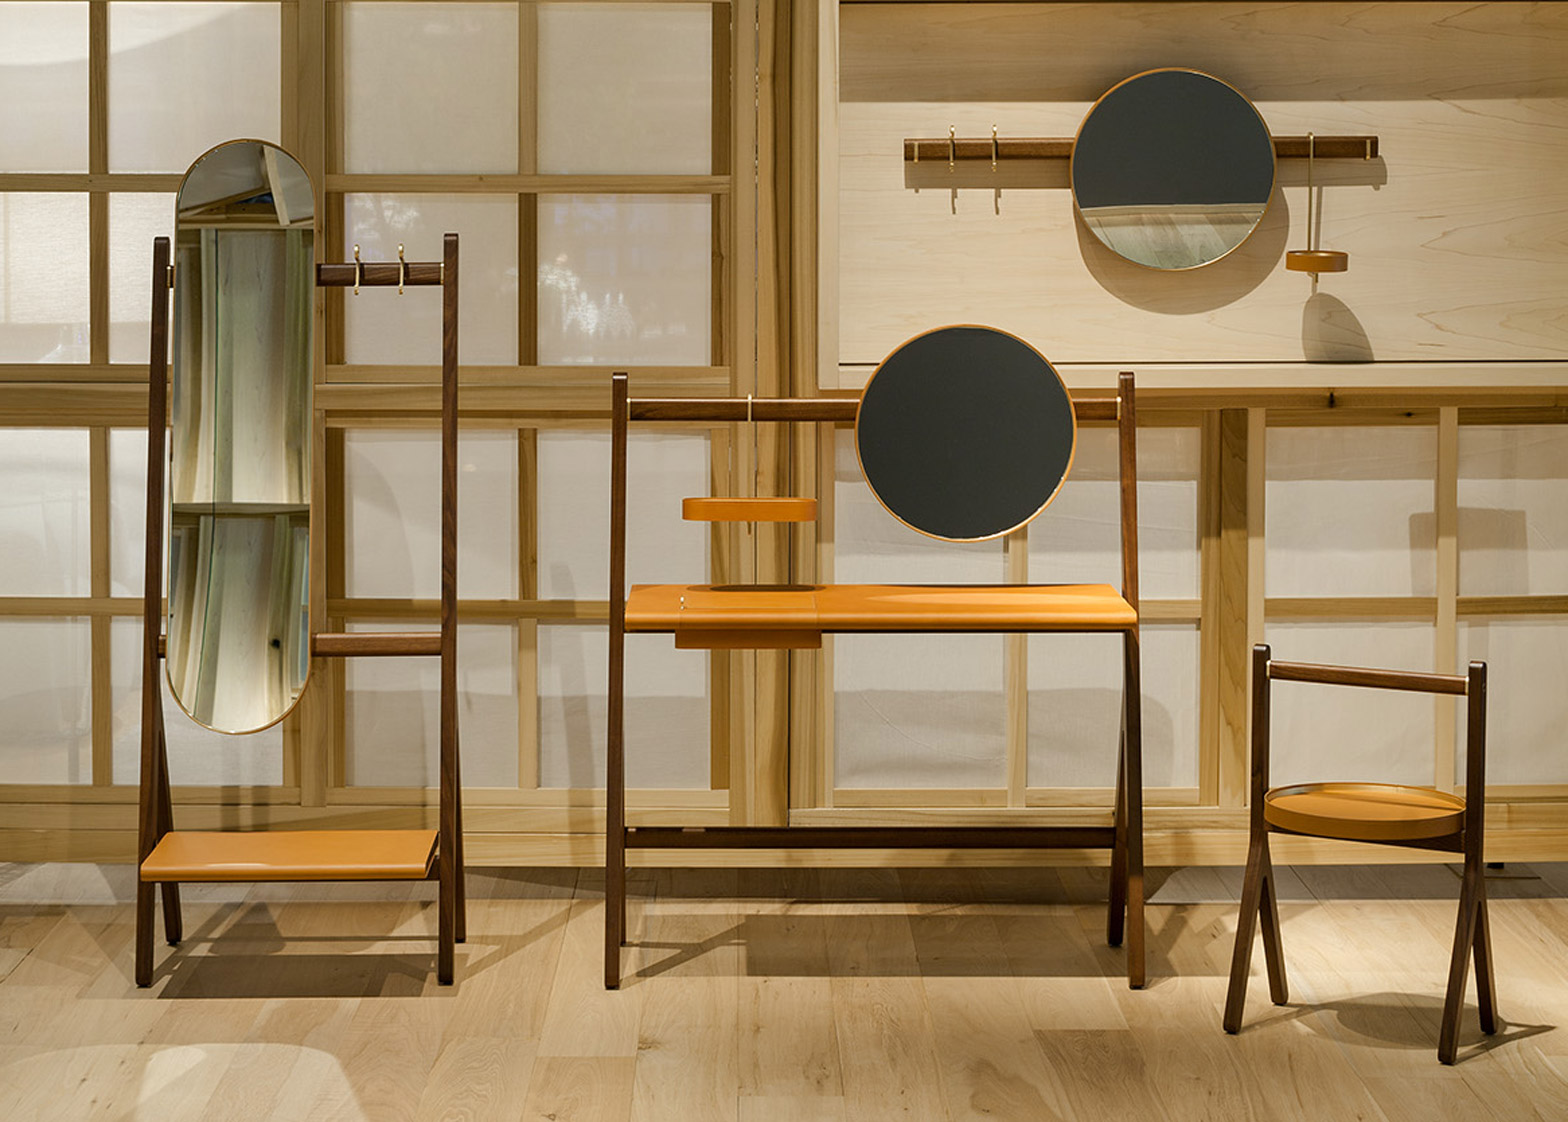 ren-furniture-range-neri-and-hu-collection-supporting-actors-chinese-characters-shape-wooden-frame-little-butlers-poltrona-frau-functions-lifestyle_dezeen_1568_2.jpg